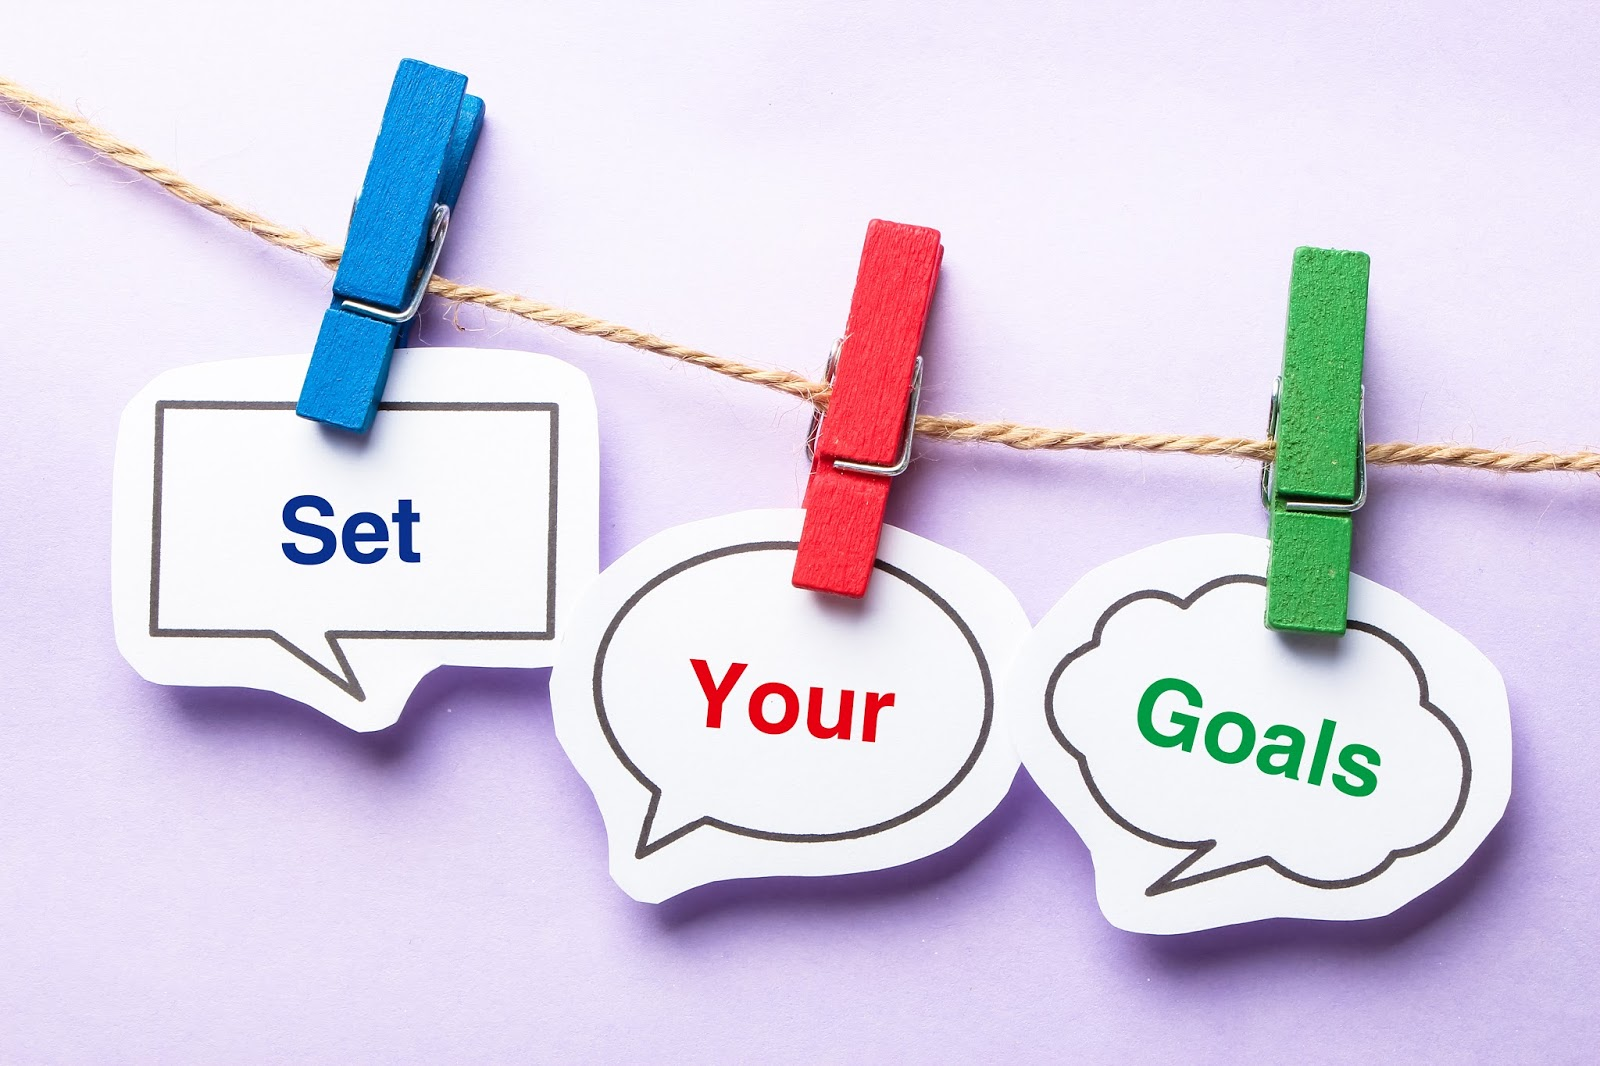 Goal Setting - LIVE Smart - LibGuides at University of Dundee